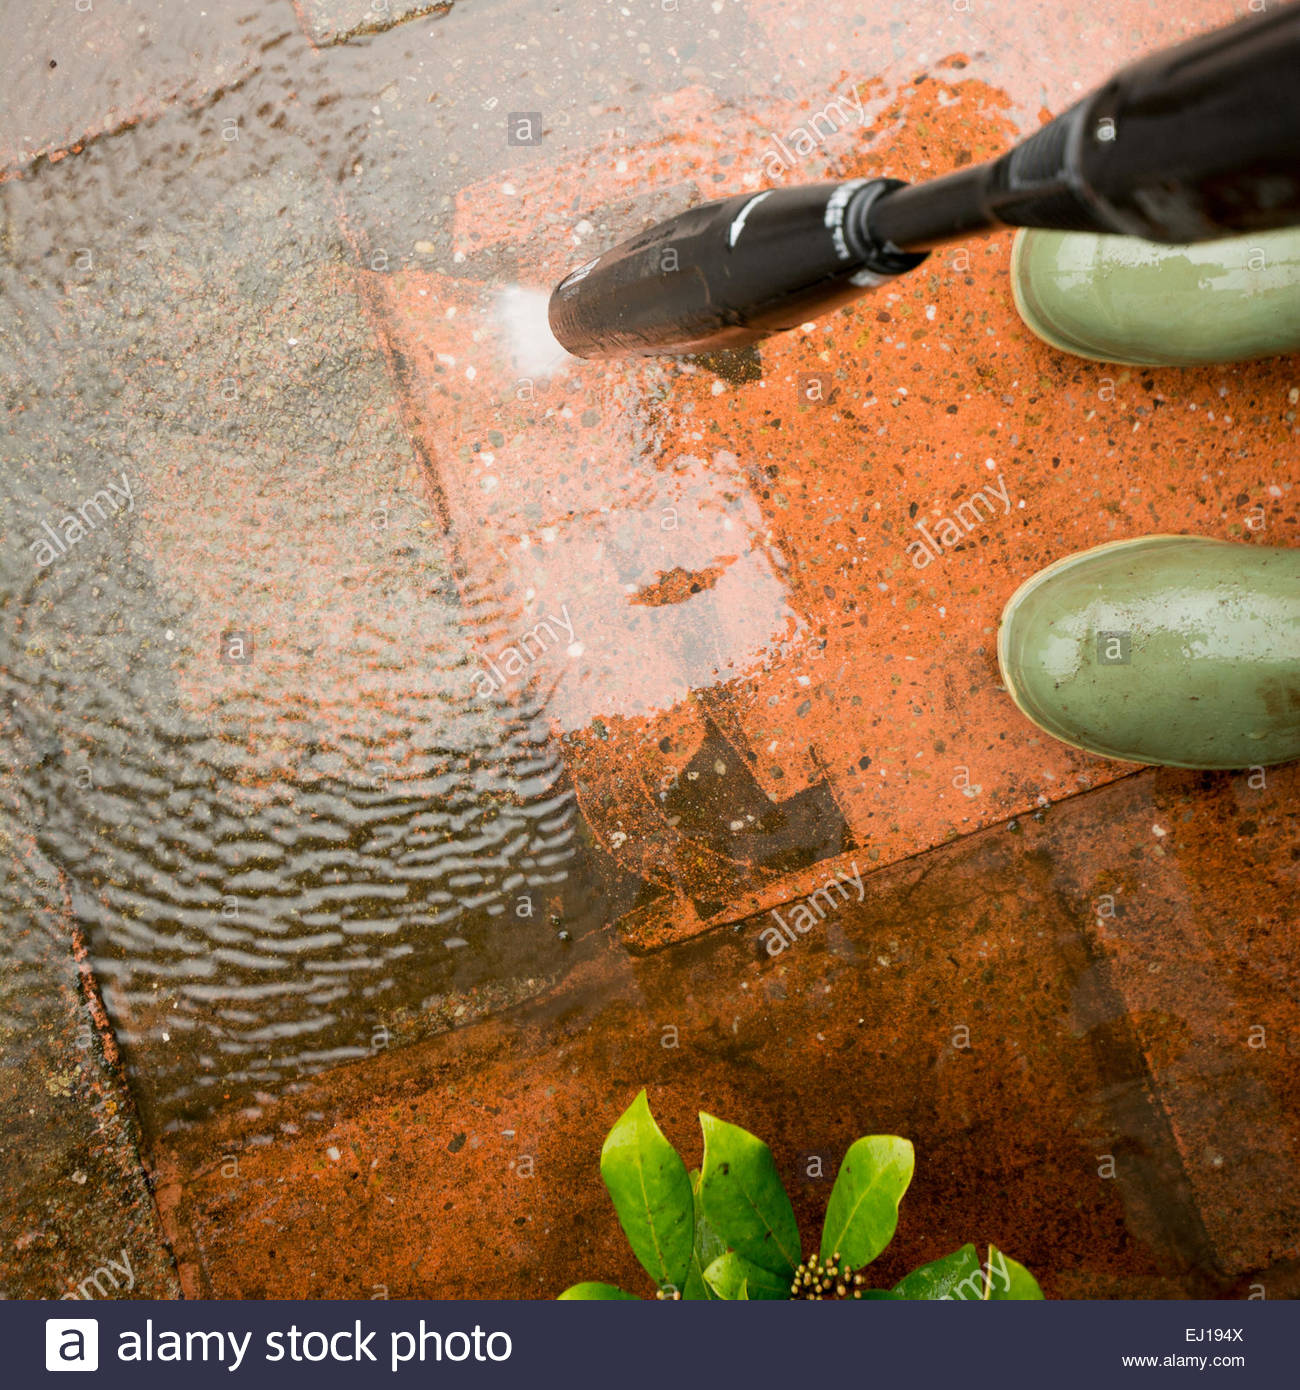 Power washing patio - showing green wellingtons and power hose - Stock Image